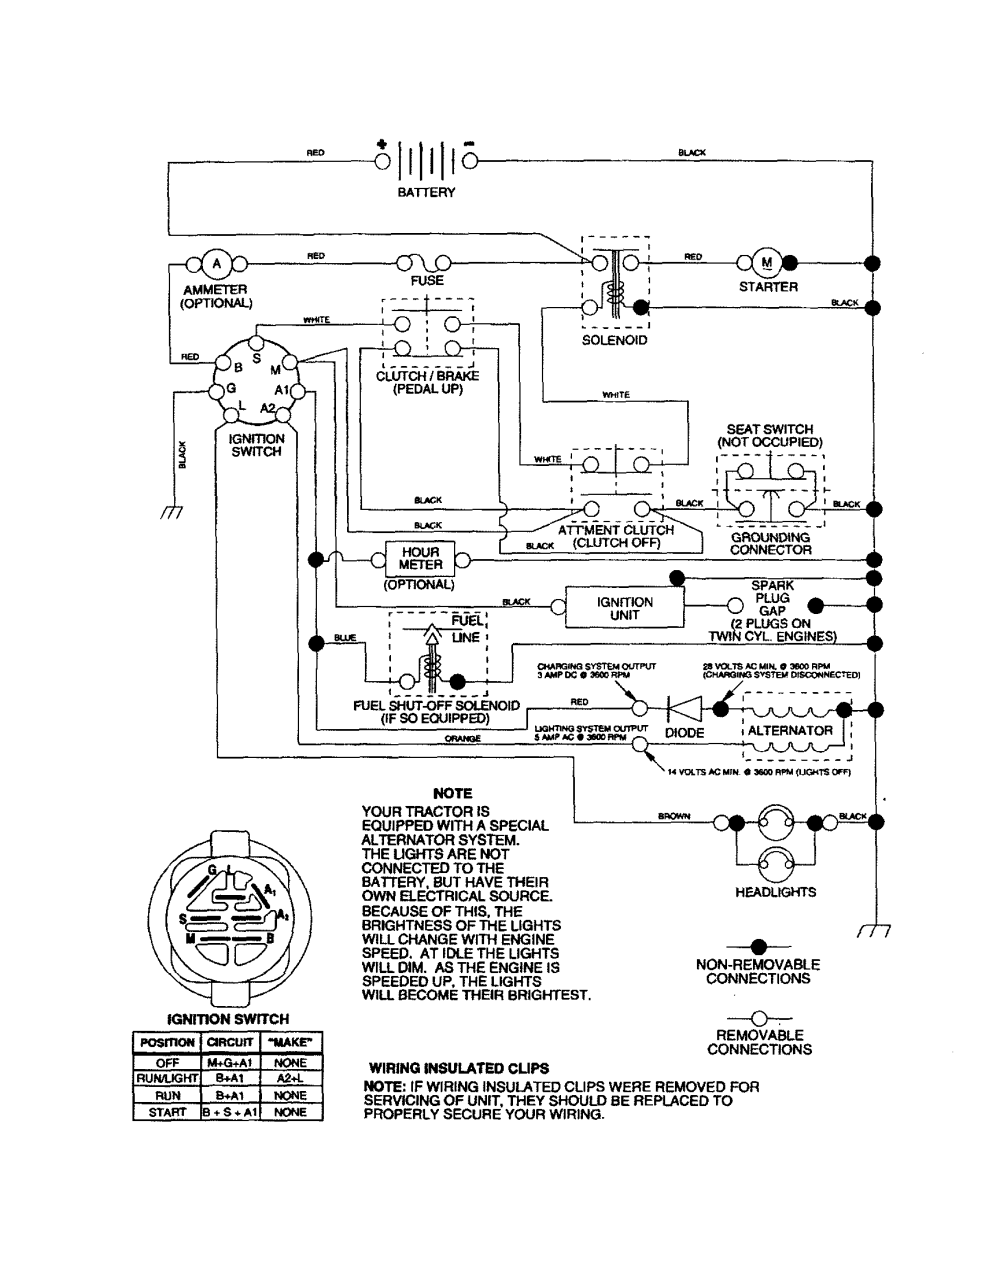 medium resolution of poulan pro lawn mower wiring diagram completed wiring diagrams u2022 rh vojvodinaslovakart com wiring diagram for